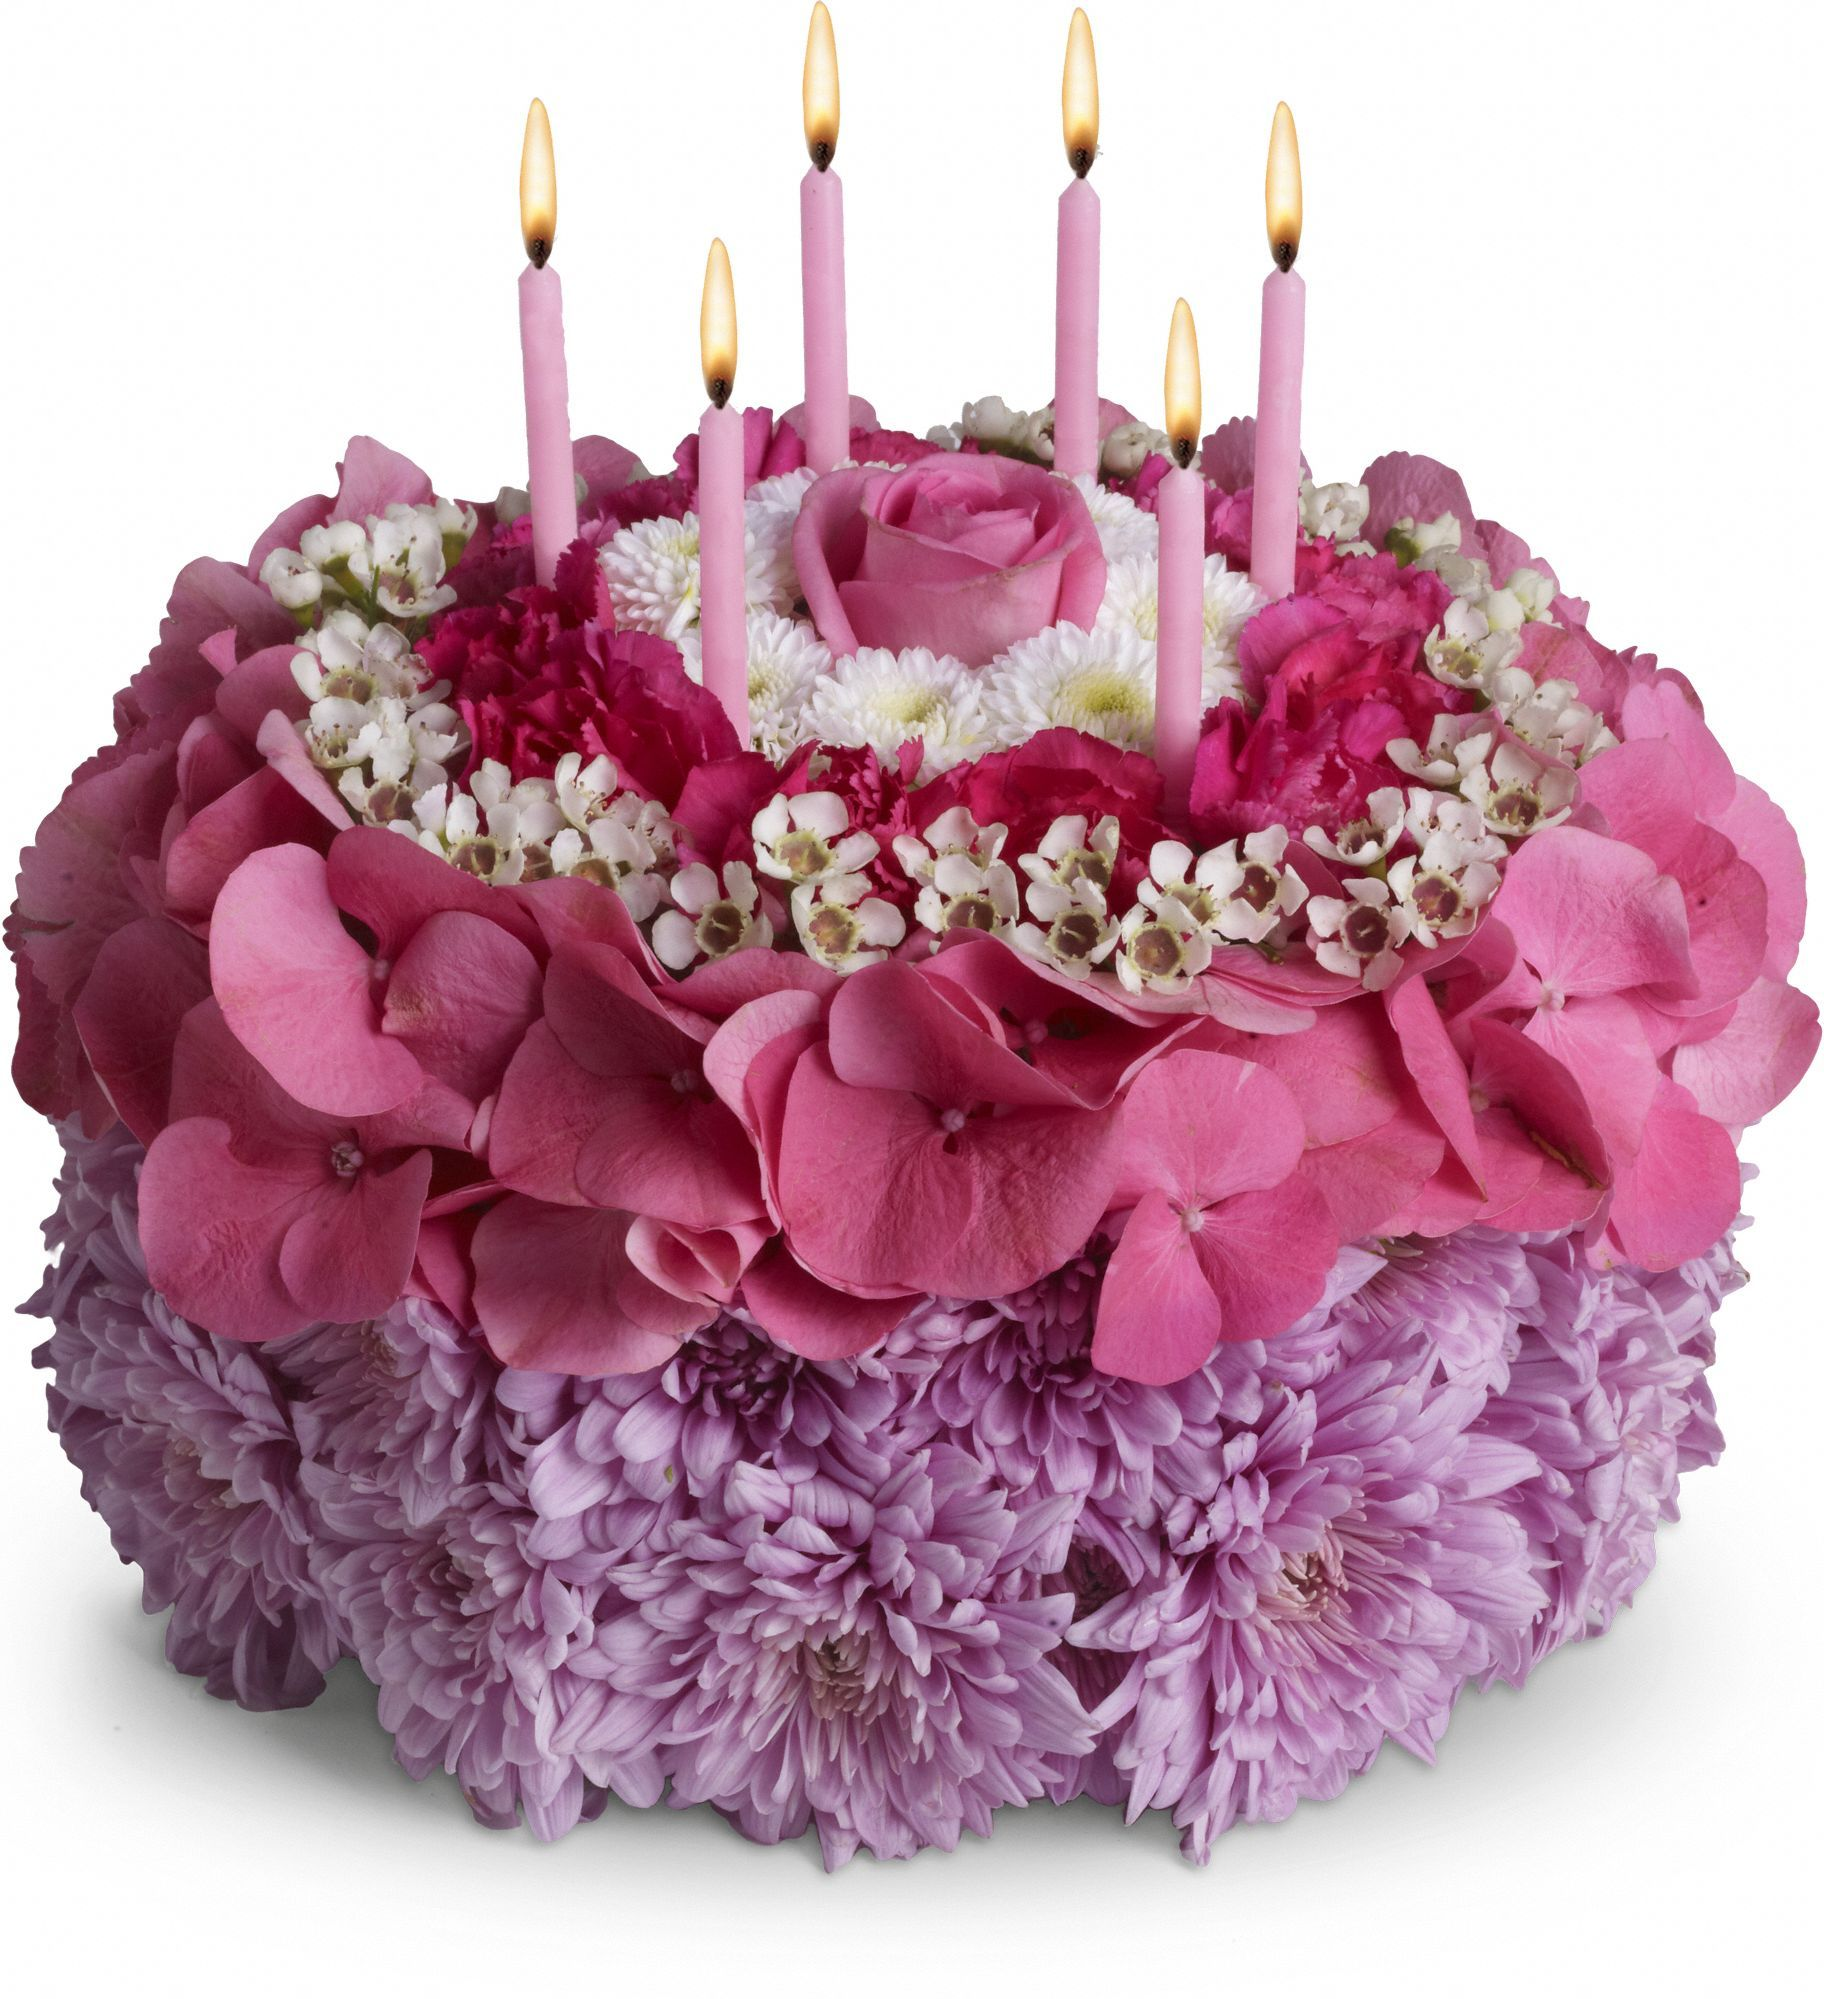 Your Special Day Save 25% on this bouquet and many others with ...